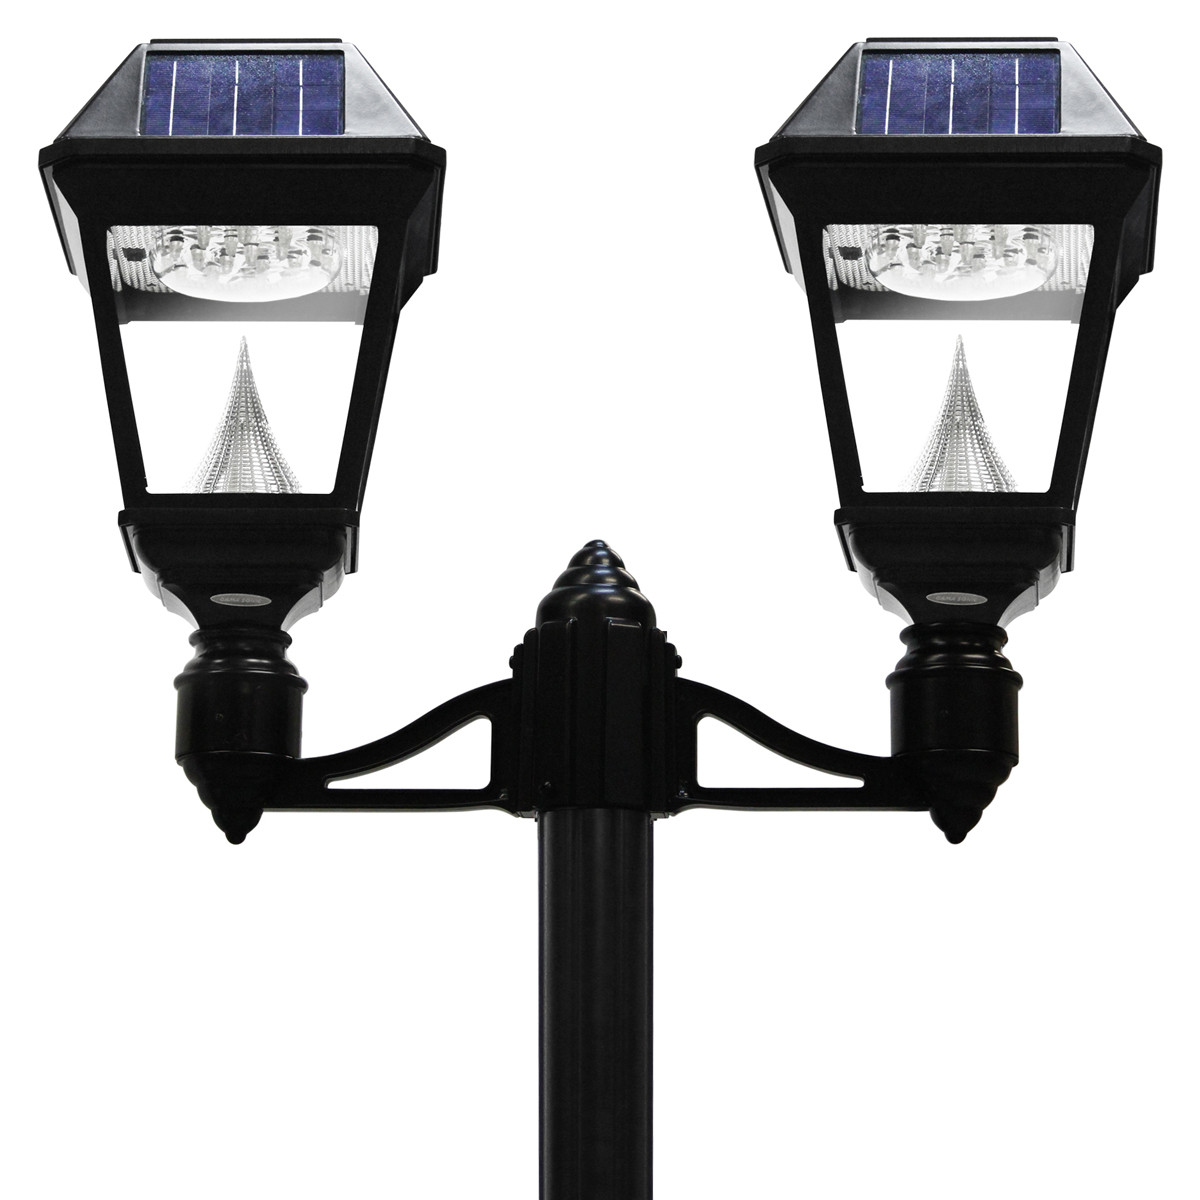 Best ideas about Solar Lamp Post Lights . Save or Pin Imperial II Series – Double Solar Lamp and Single Lamp Now.